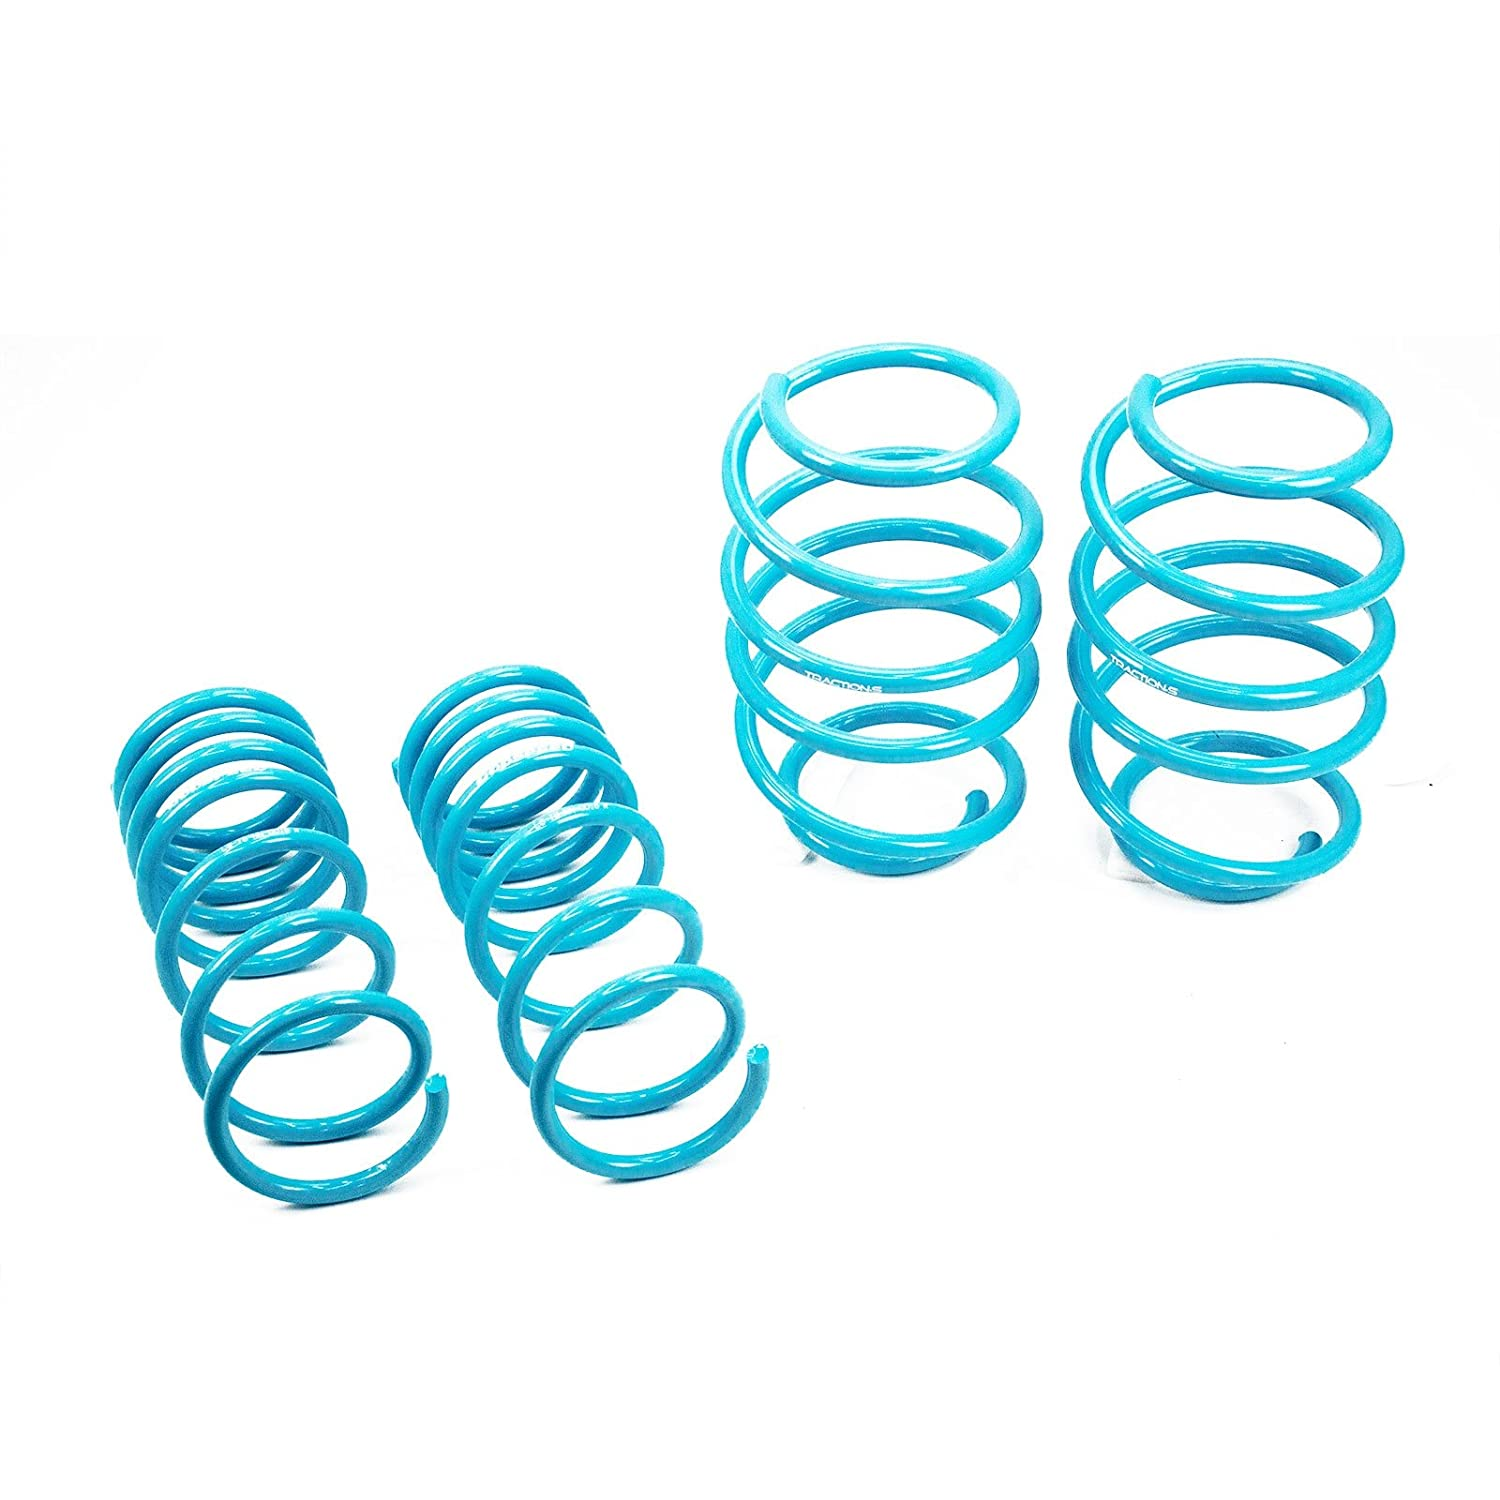 LS-TS-NN-0016-A Traction-S Performance Lowering Springs for Nissan Altima Sedan 3.5L 2007-12 L32A